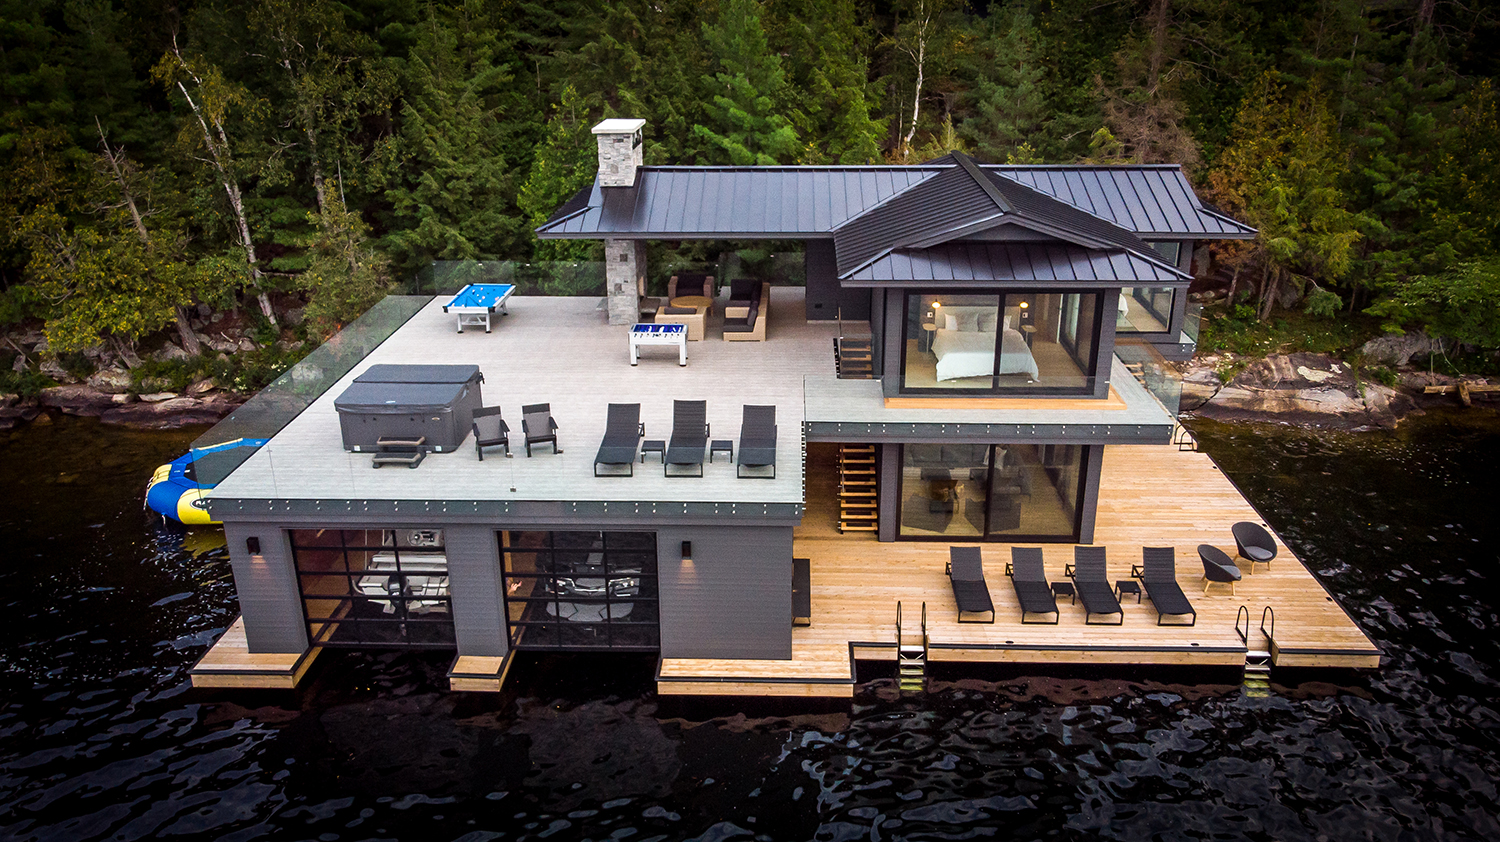 Contemporary boathouse with standing seam steel roof by PattyMac